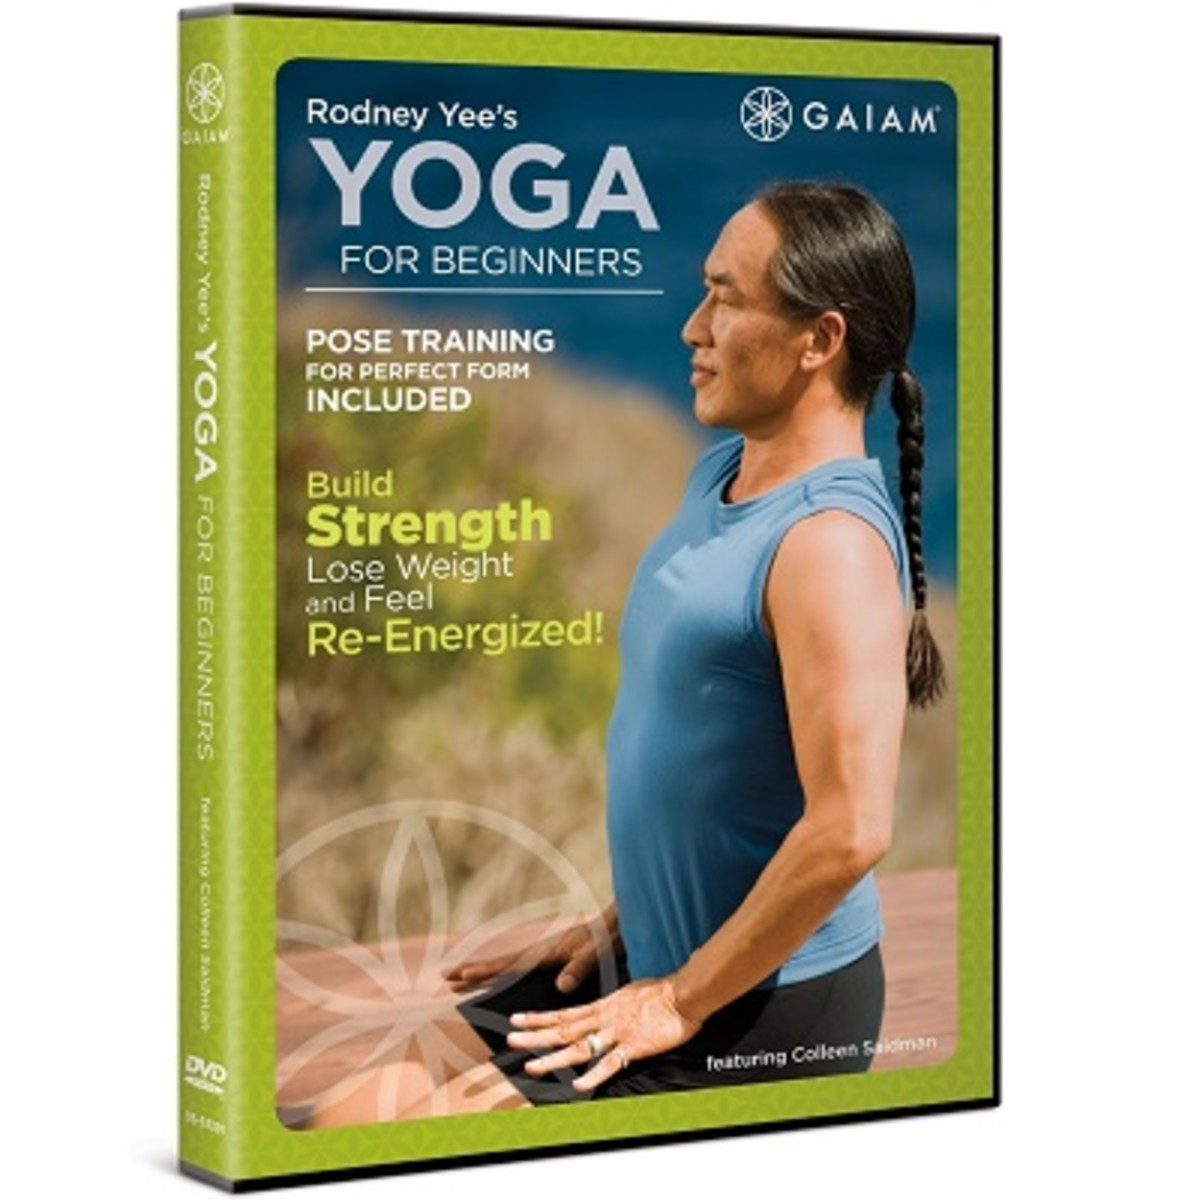 If you're looking for a good place to start out, I recommend Rodney Yee's beginning yoga DVDs. These took me from where I was to where I am right now.